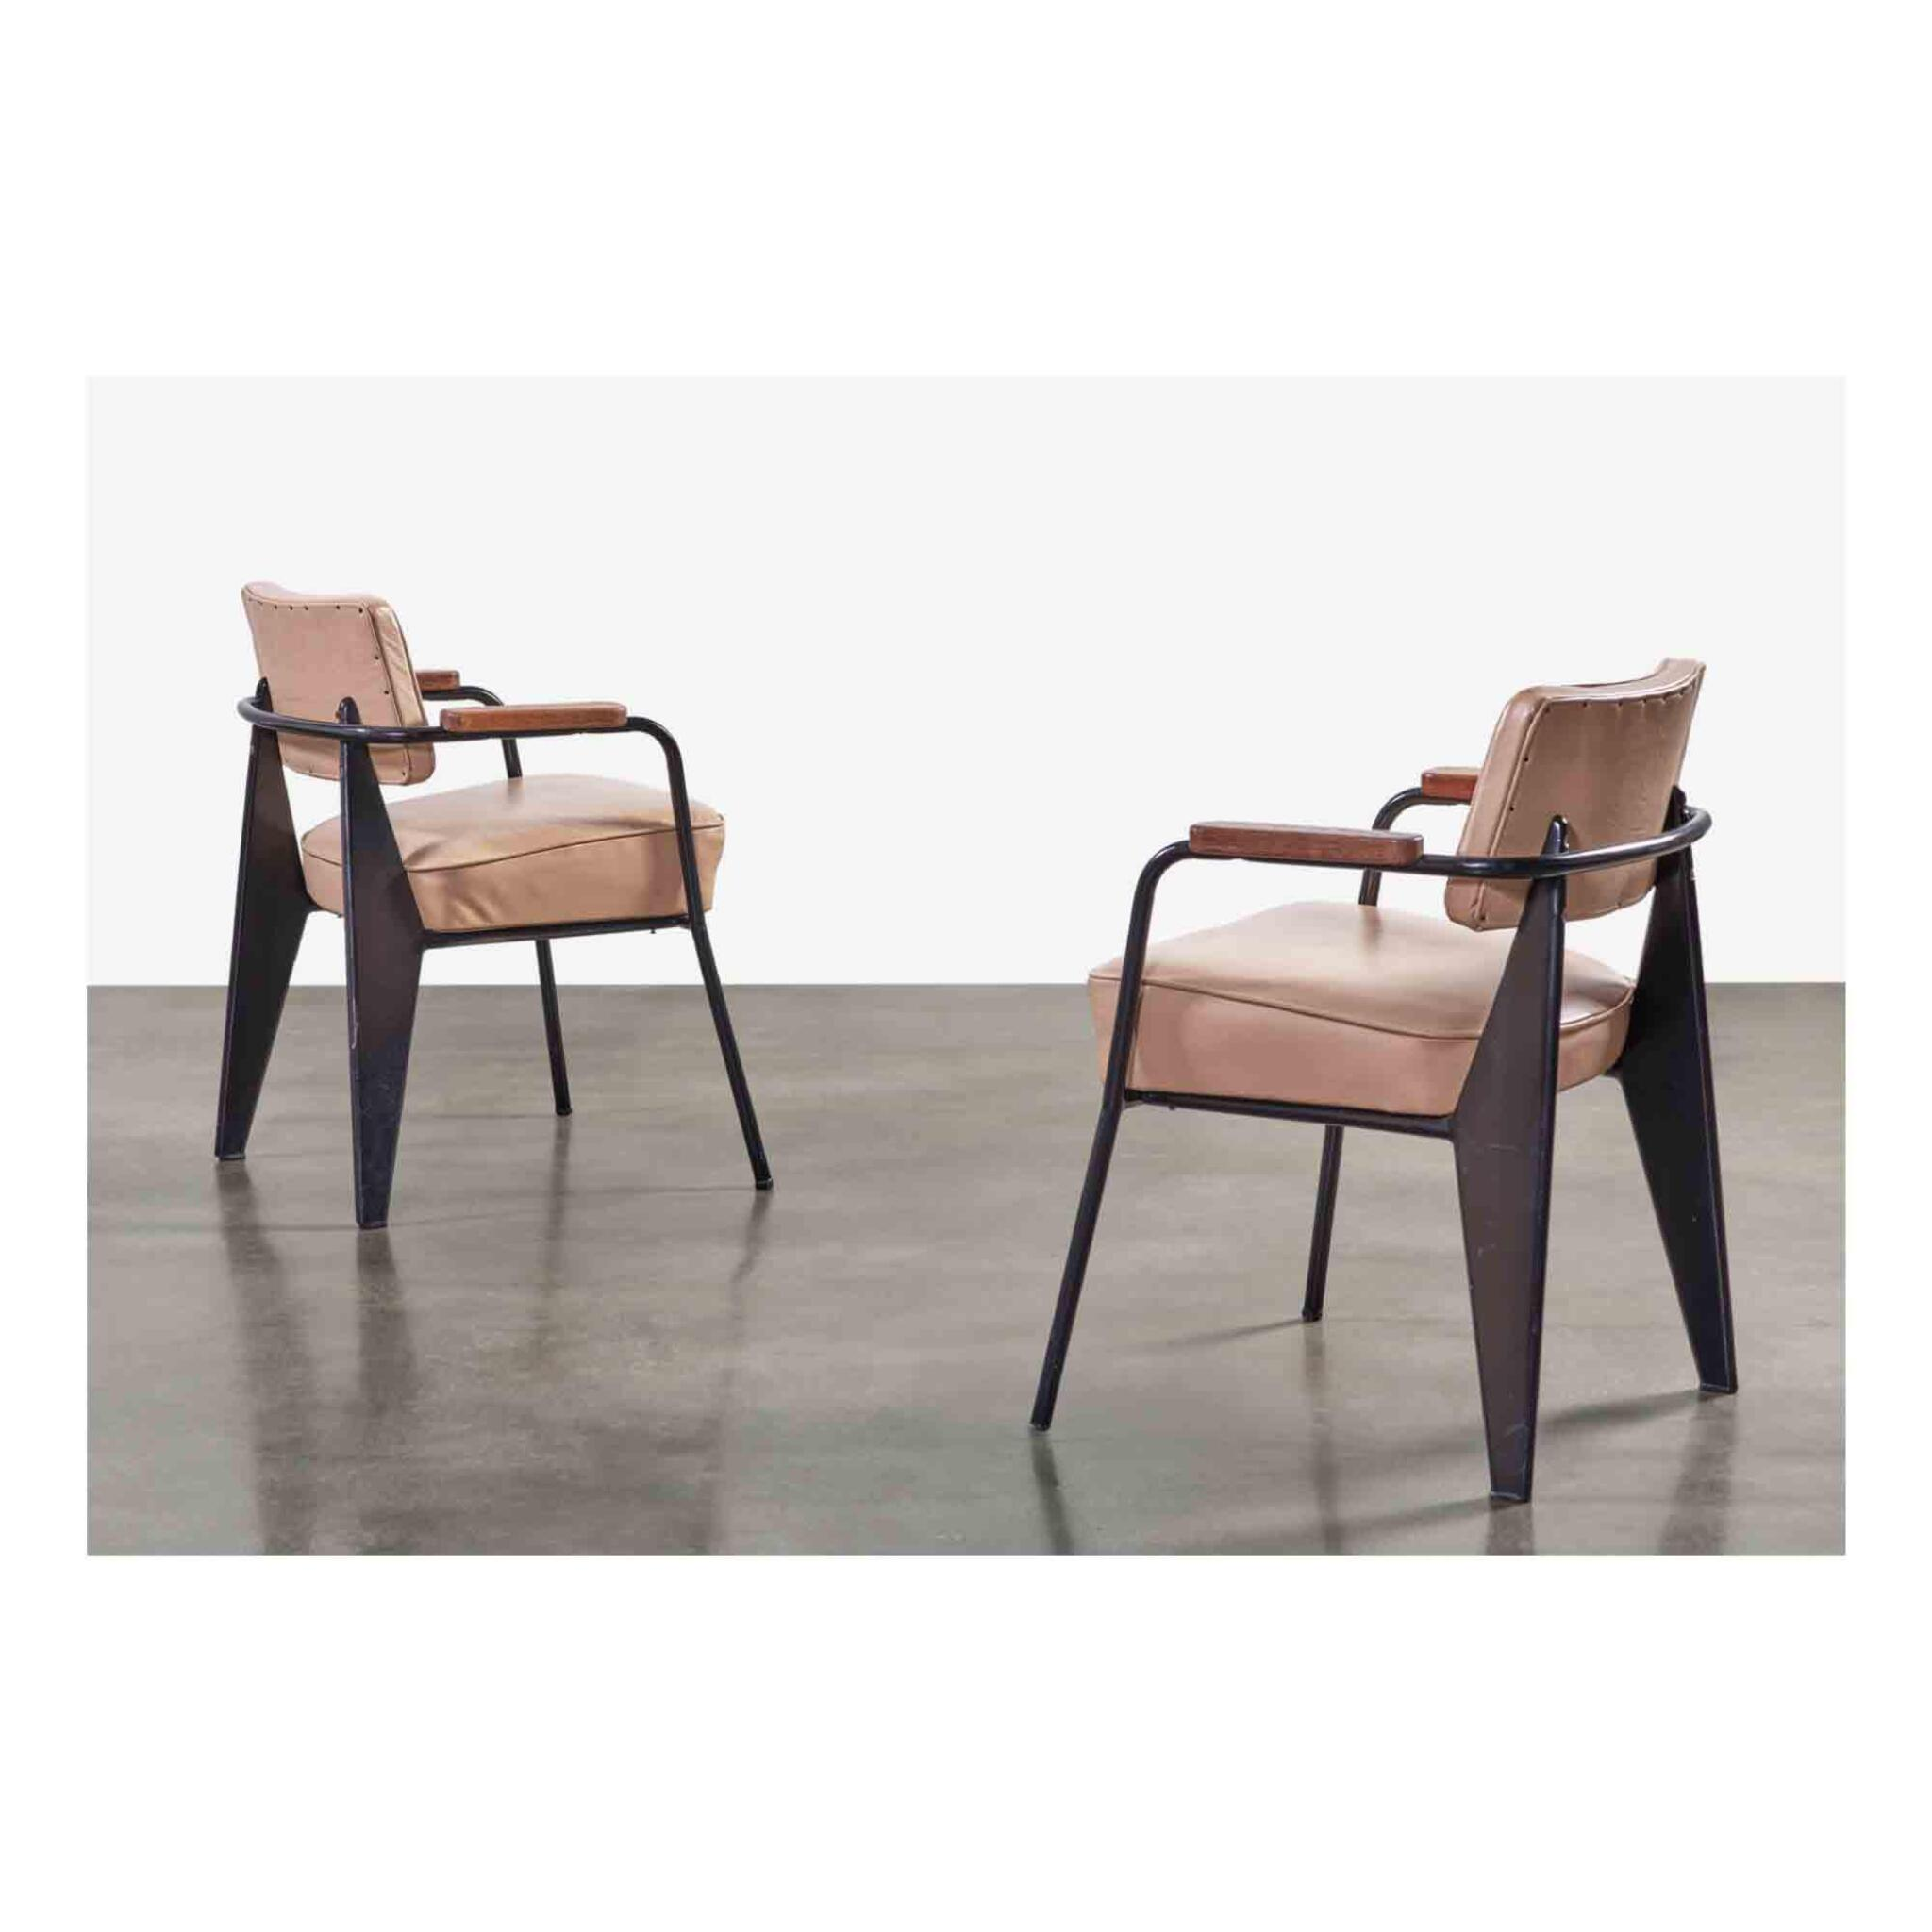 """View full screen - View 1 of Lot 91. Pair of """"Direction"""" Armchairs, Model No. 352."""